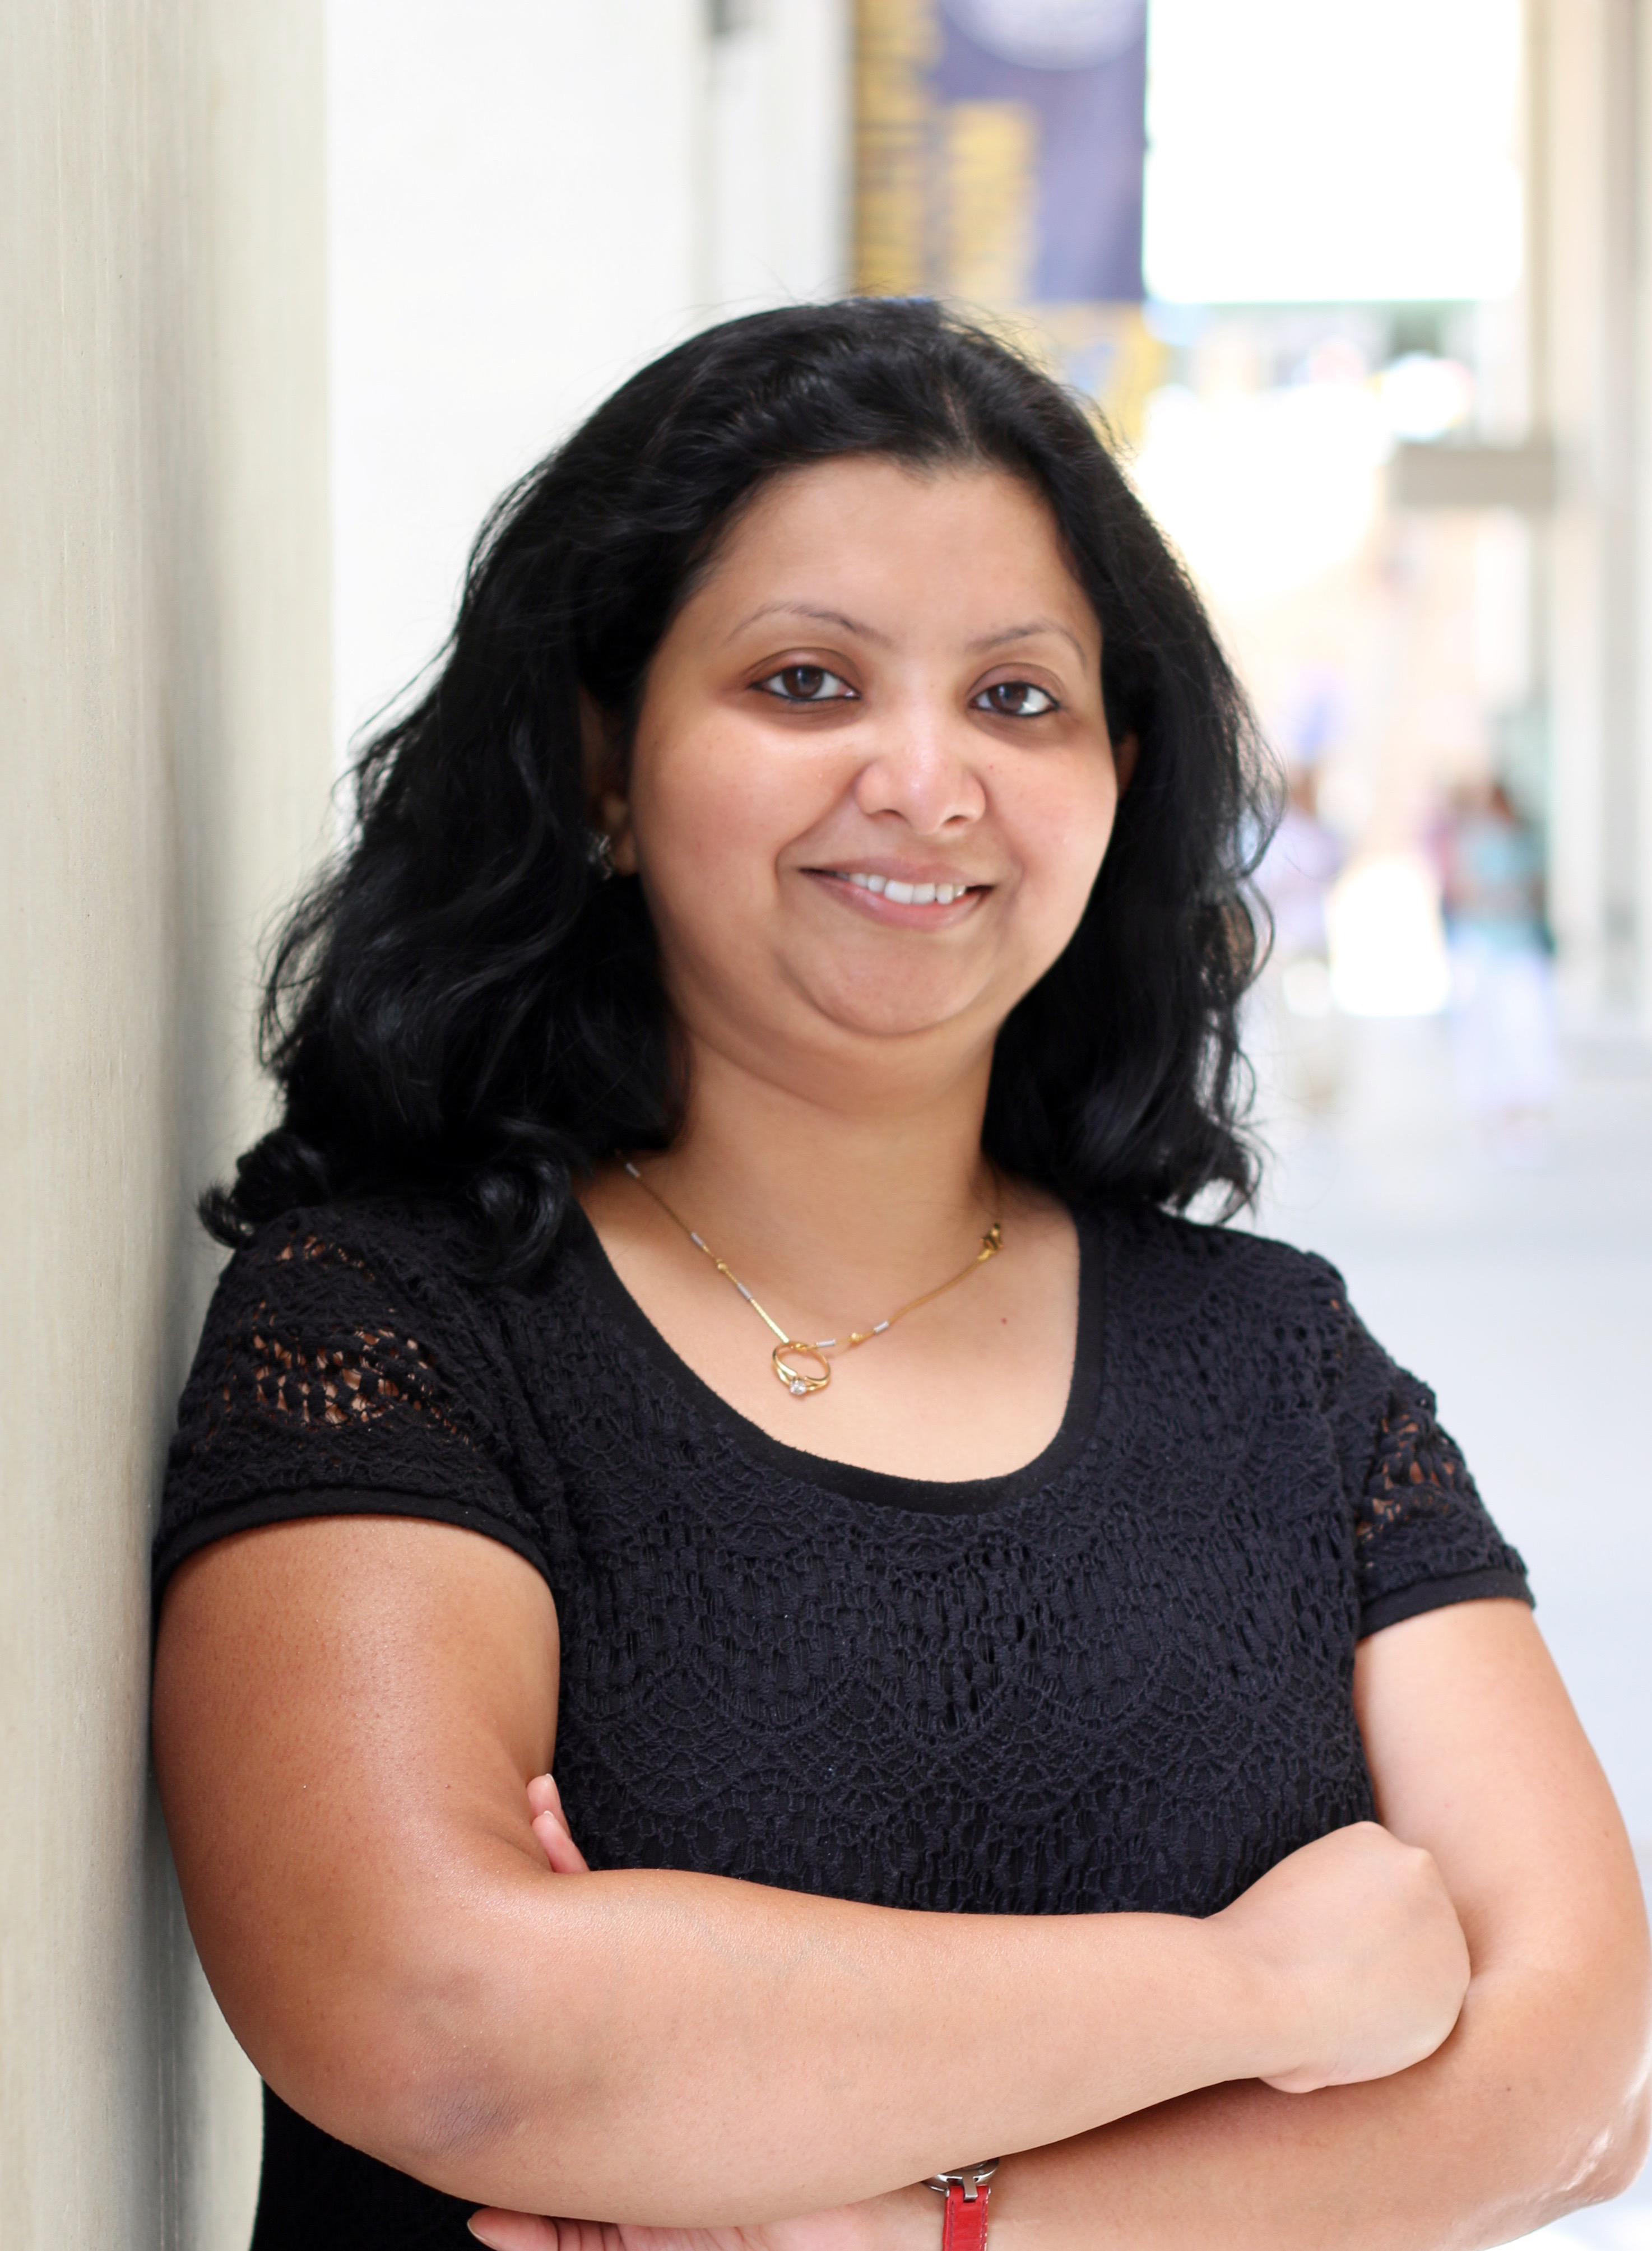 Sudipta Das, Ph.D. – Co-Vice Chair of External Relations and Finance